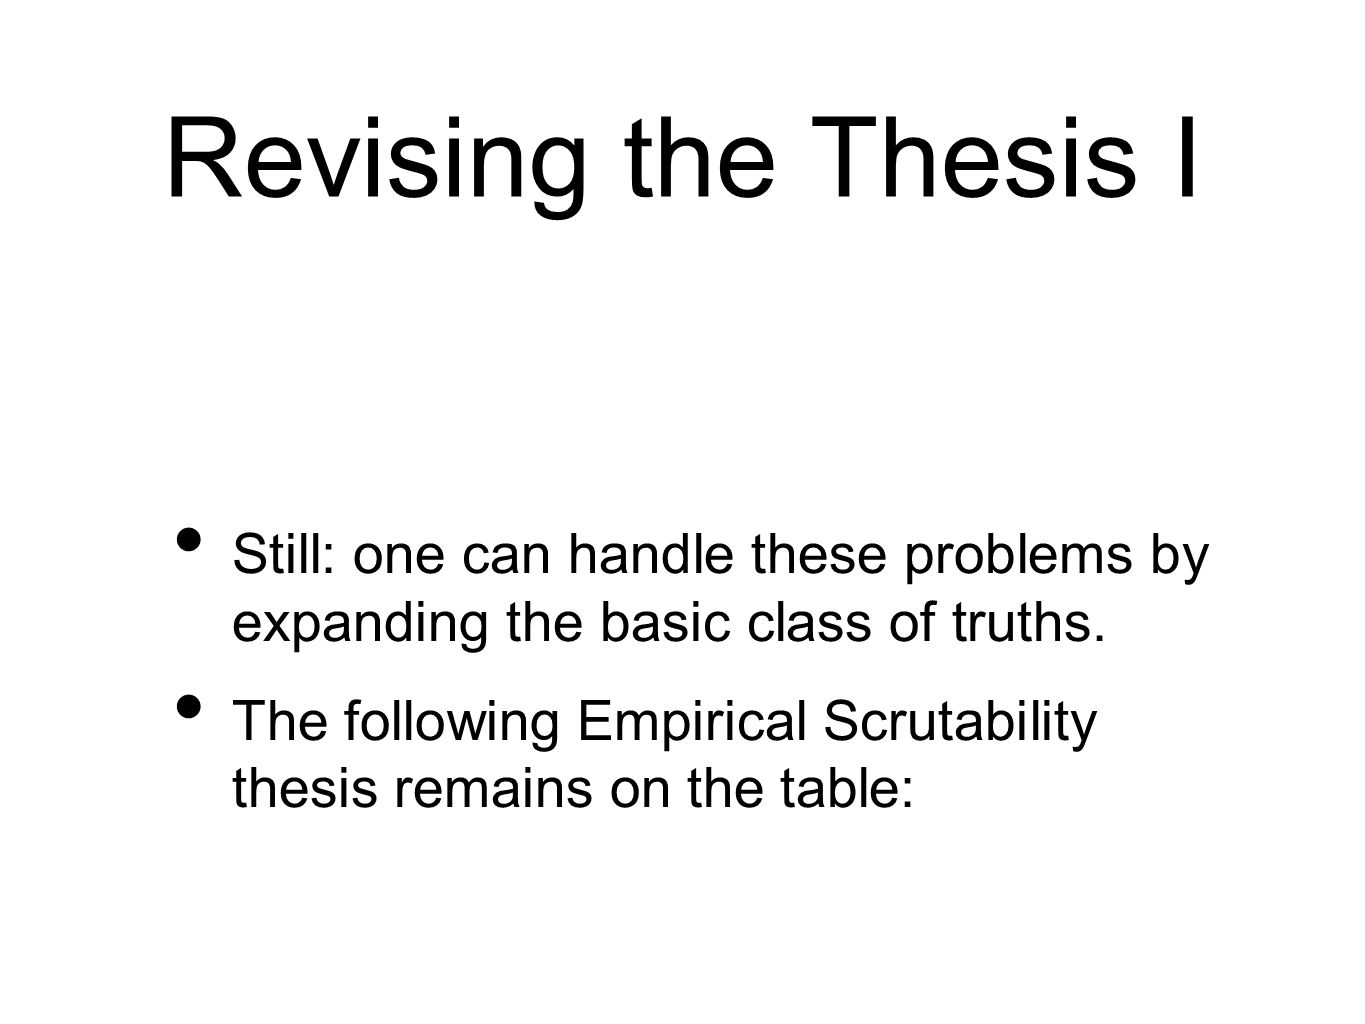 Revising the Thesis I Still: one can handle these problems by expanding the basic class of truths. The following Empirical Scrutability thesis remains